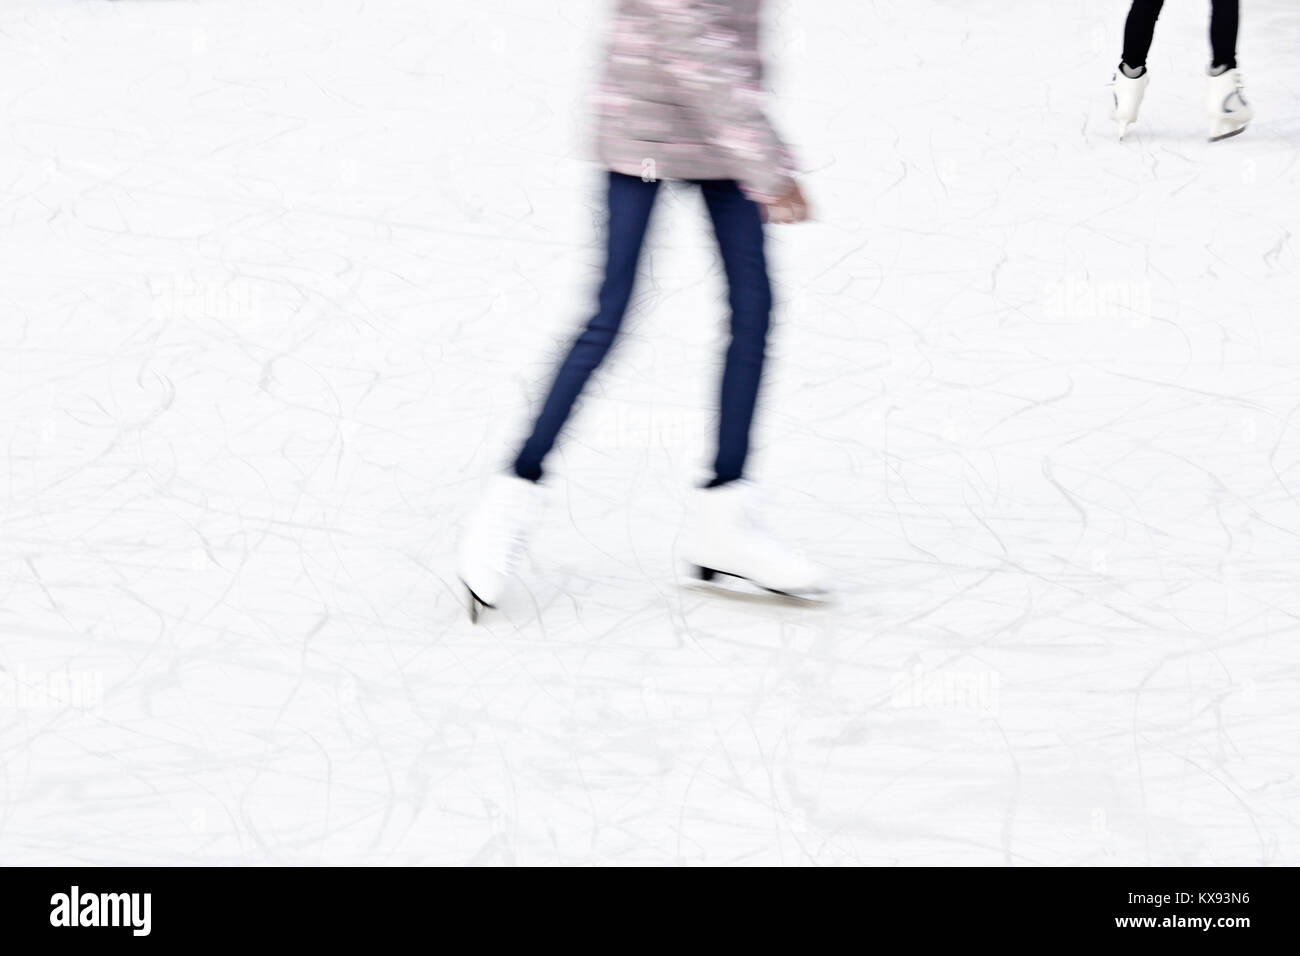 Arty blurry two teenage girl ice skating legs , fun and winter recreation detail - Stock Image